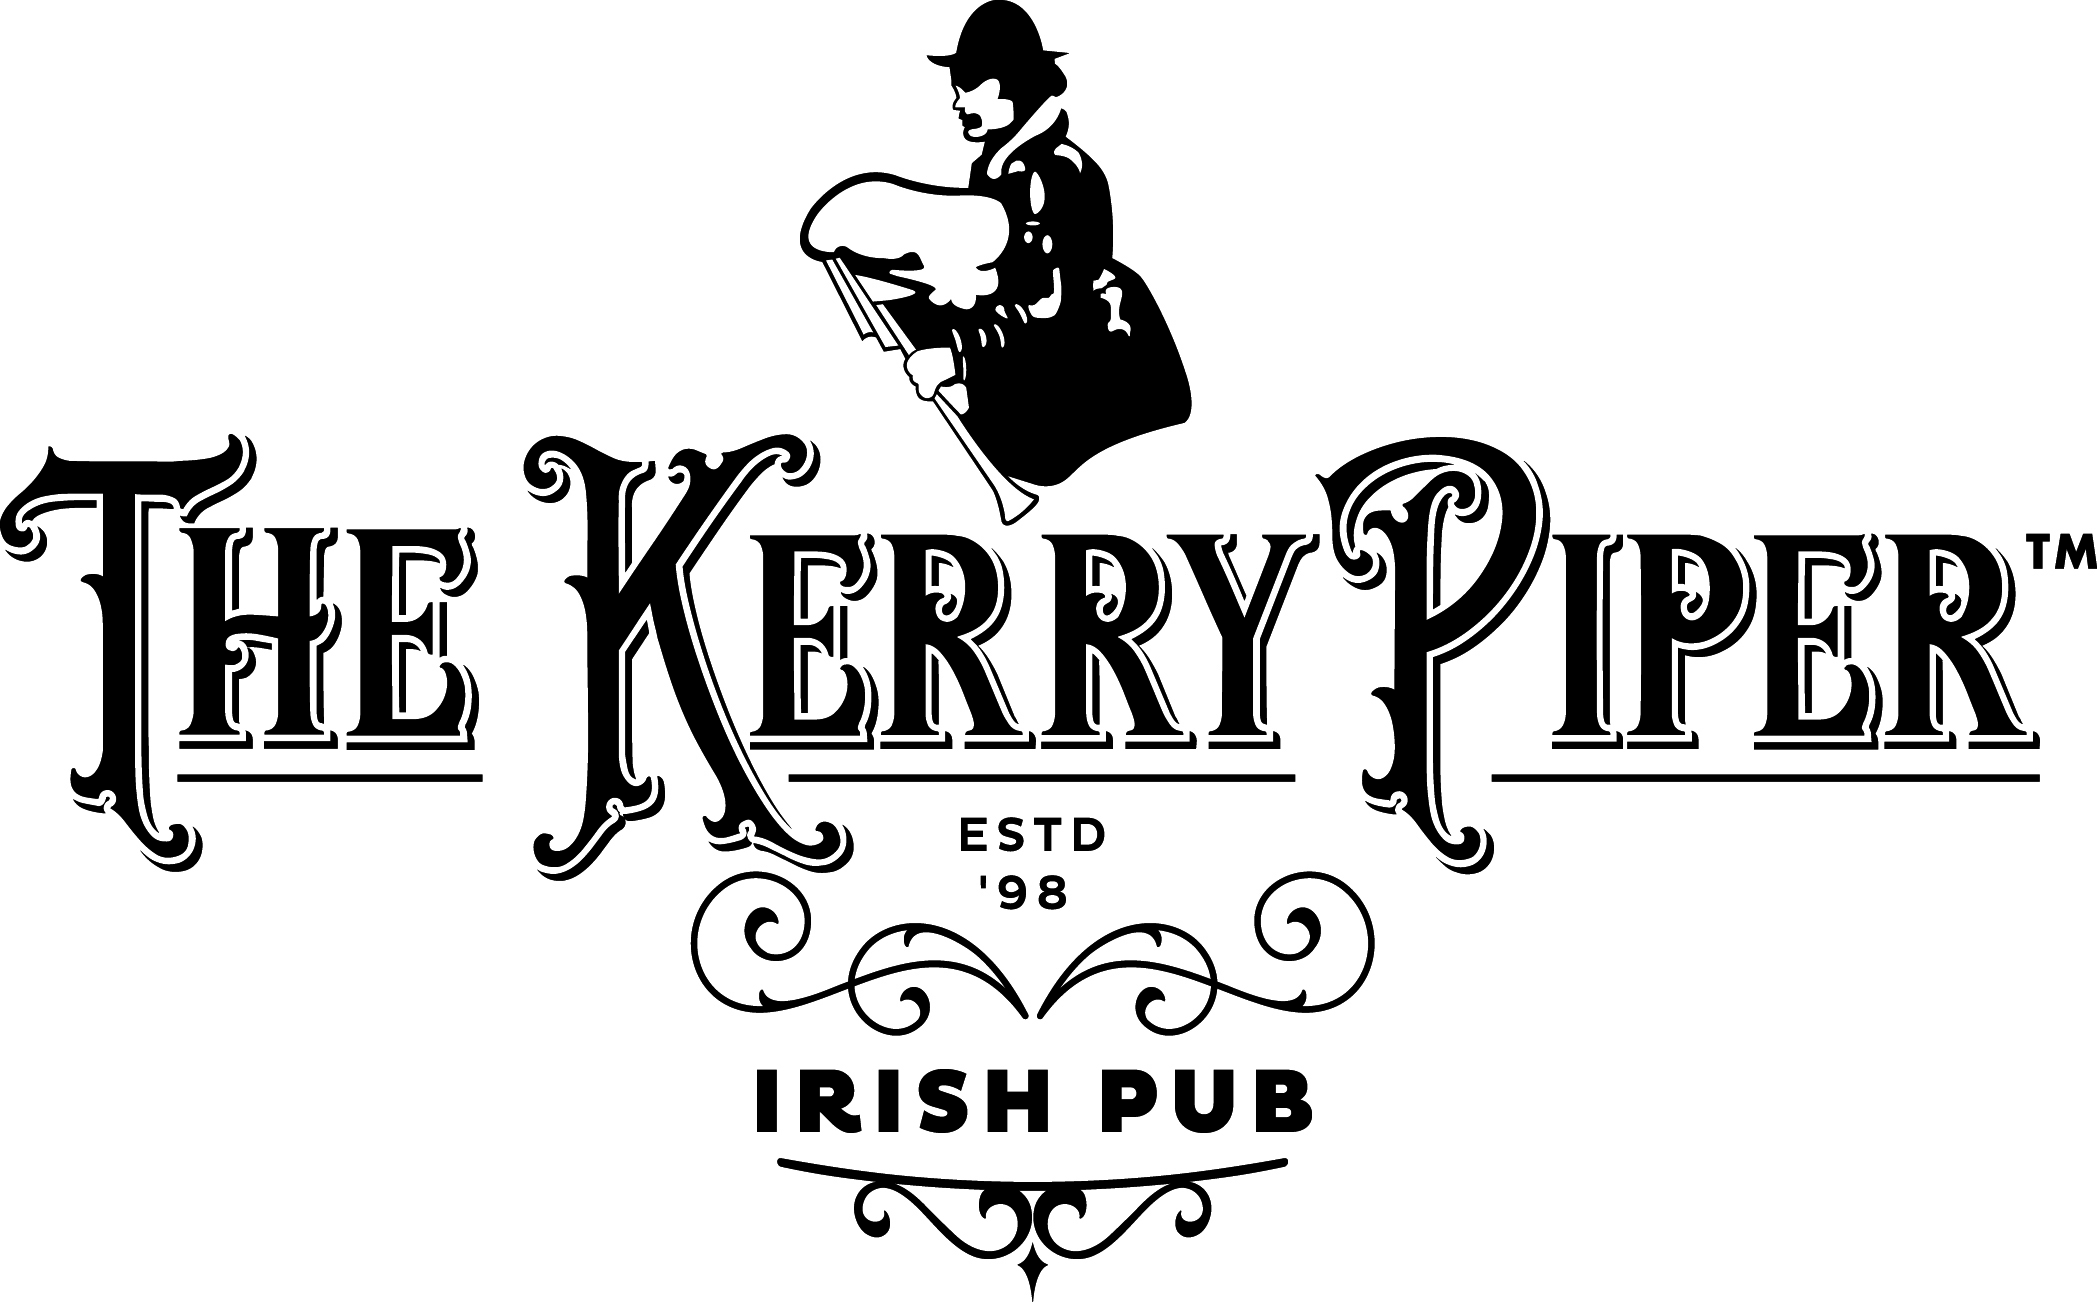 The kerry piper b w logo 09.21.17